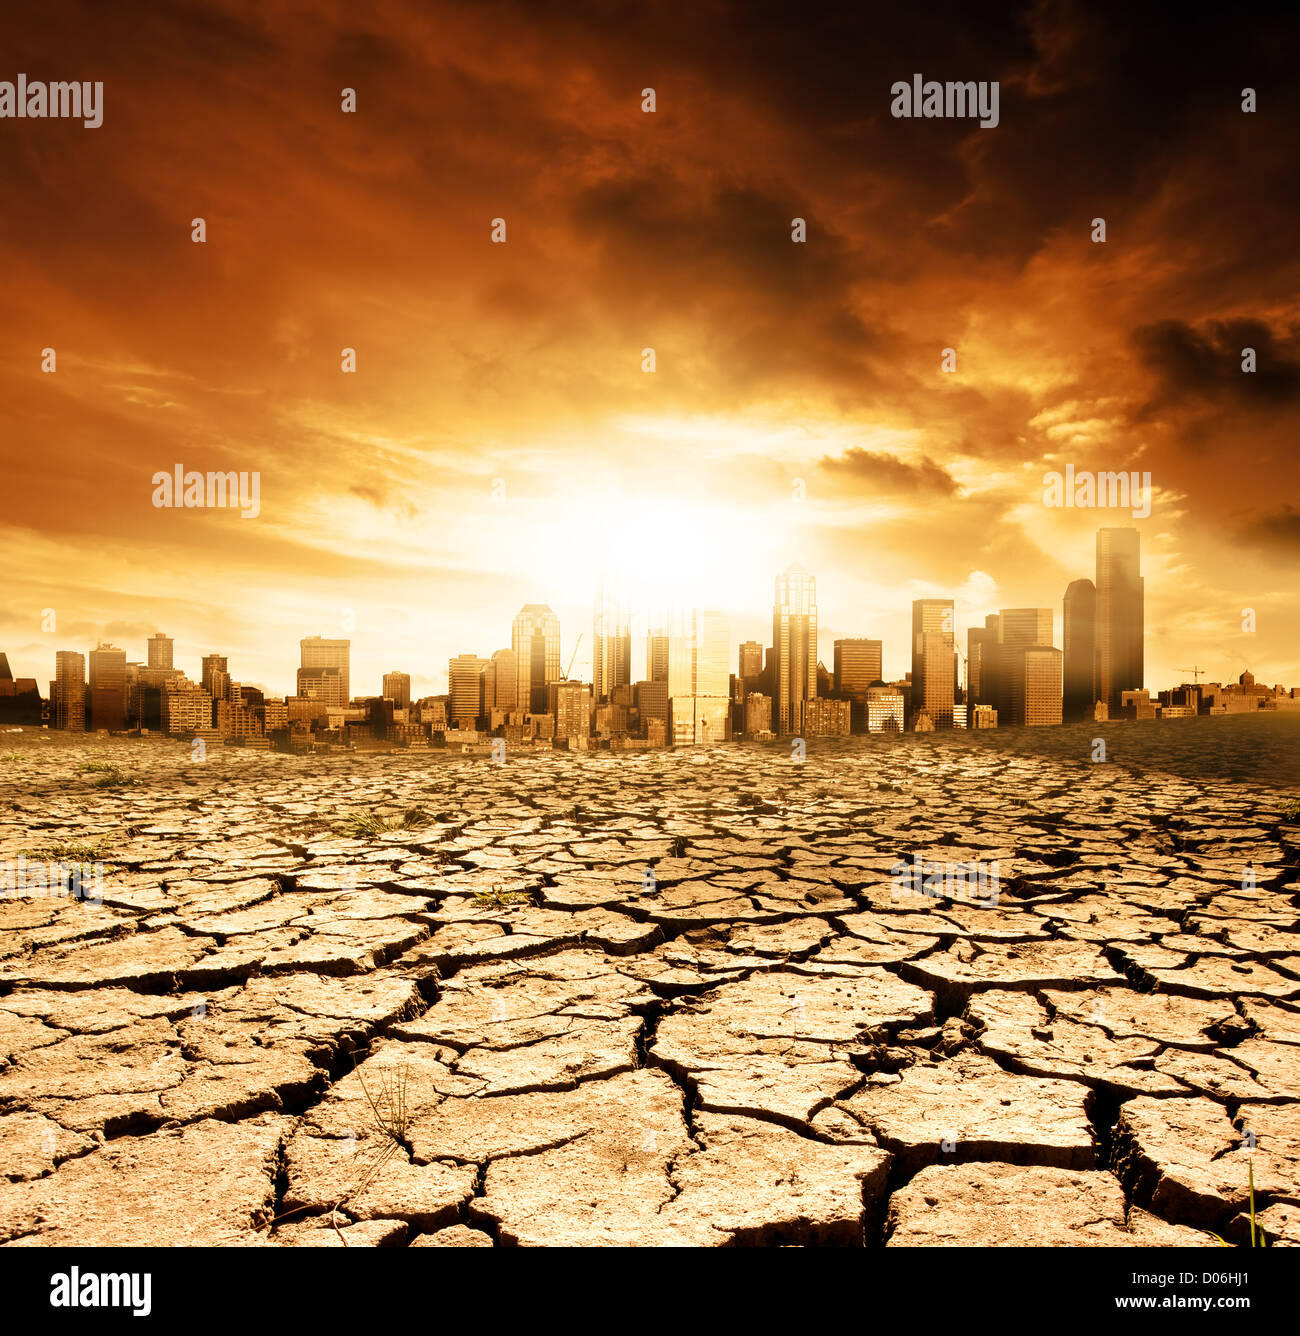 Global Warming Concept Image - Stock Image